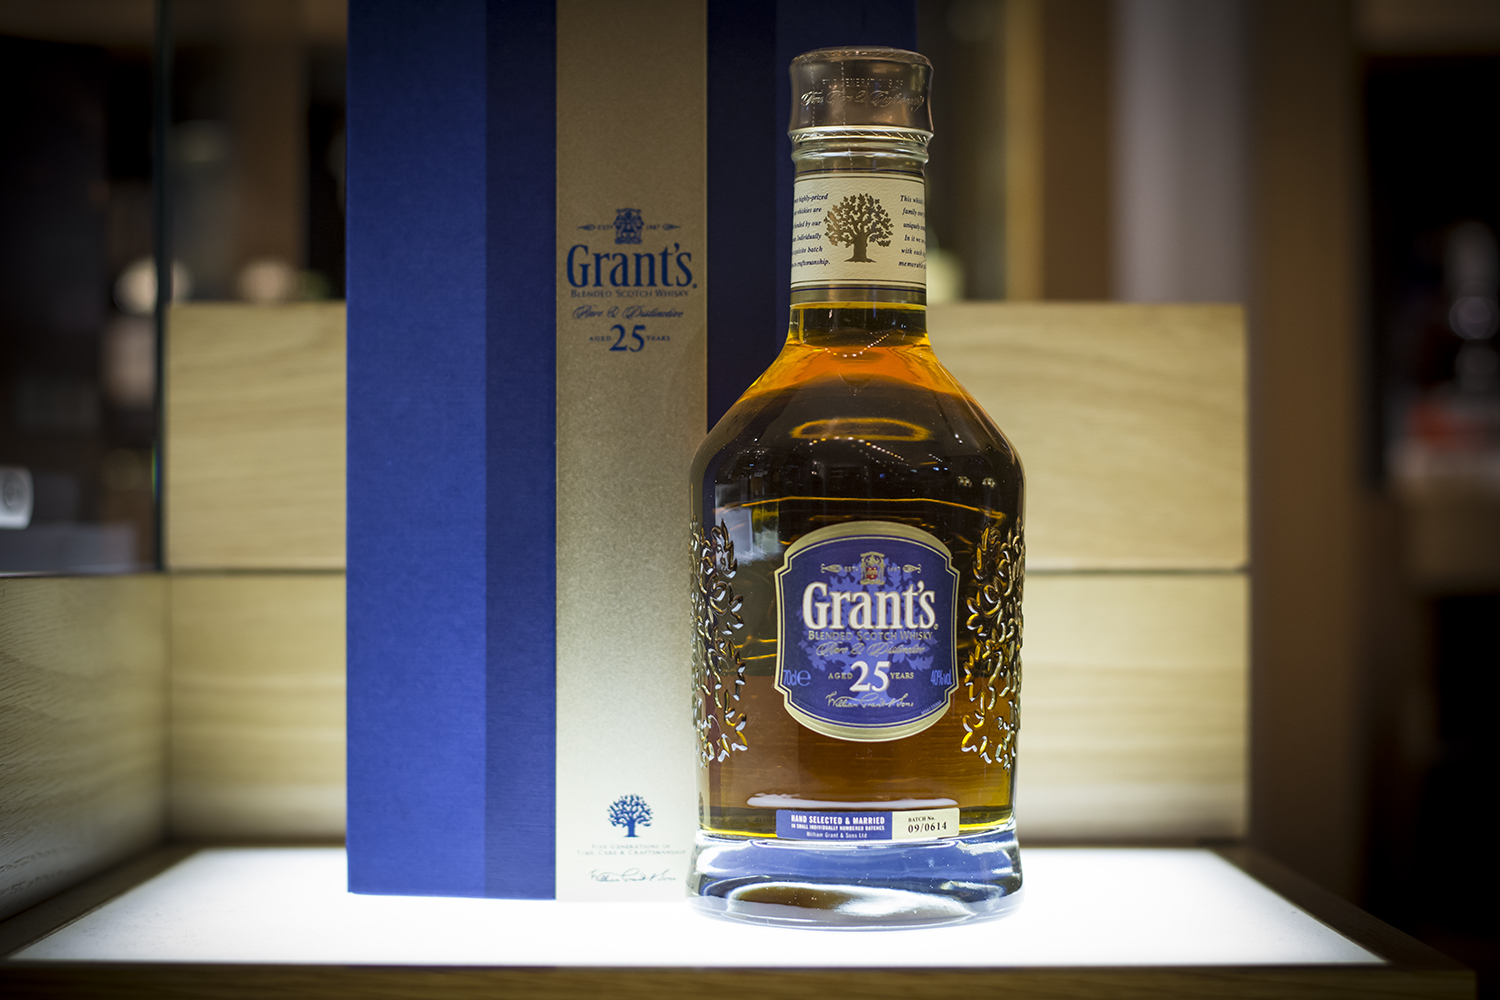 grants 25 year old scotch